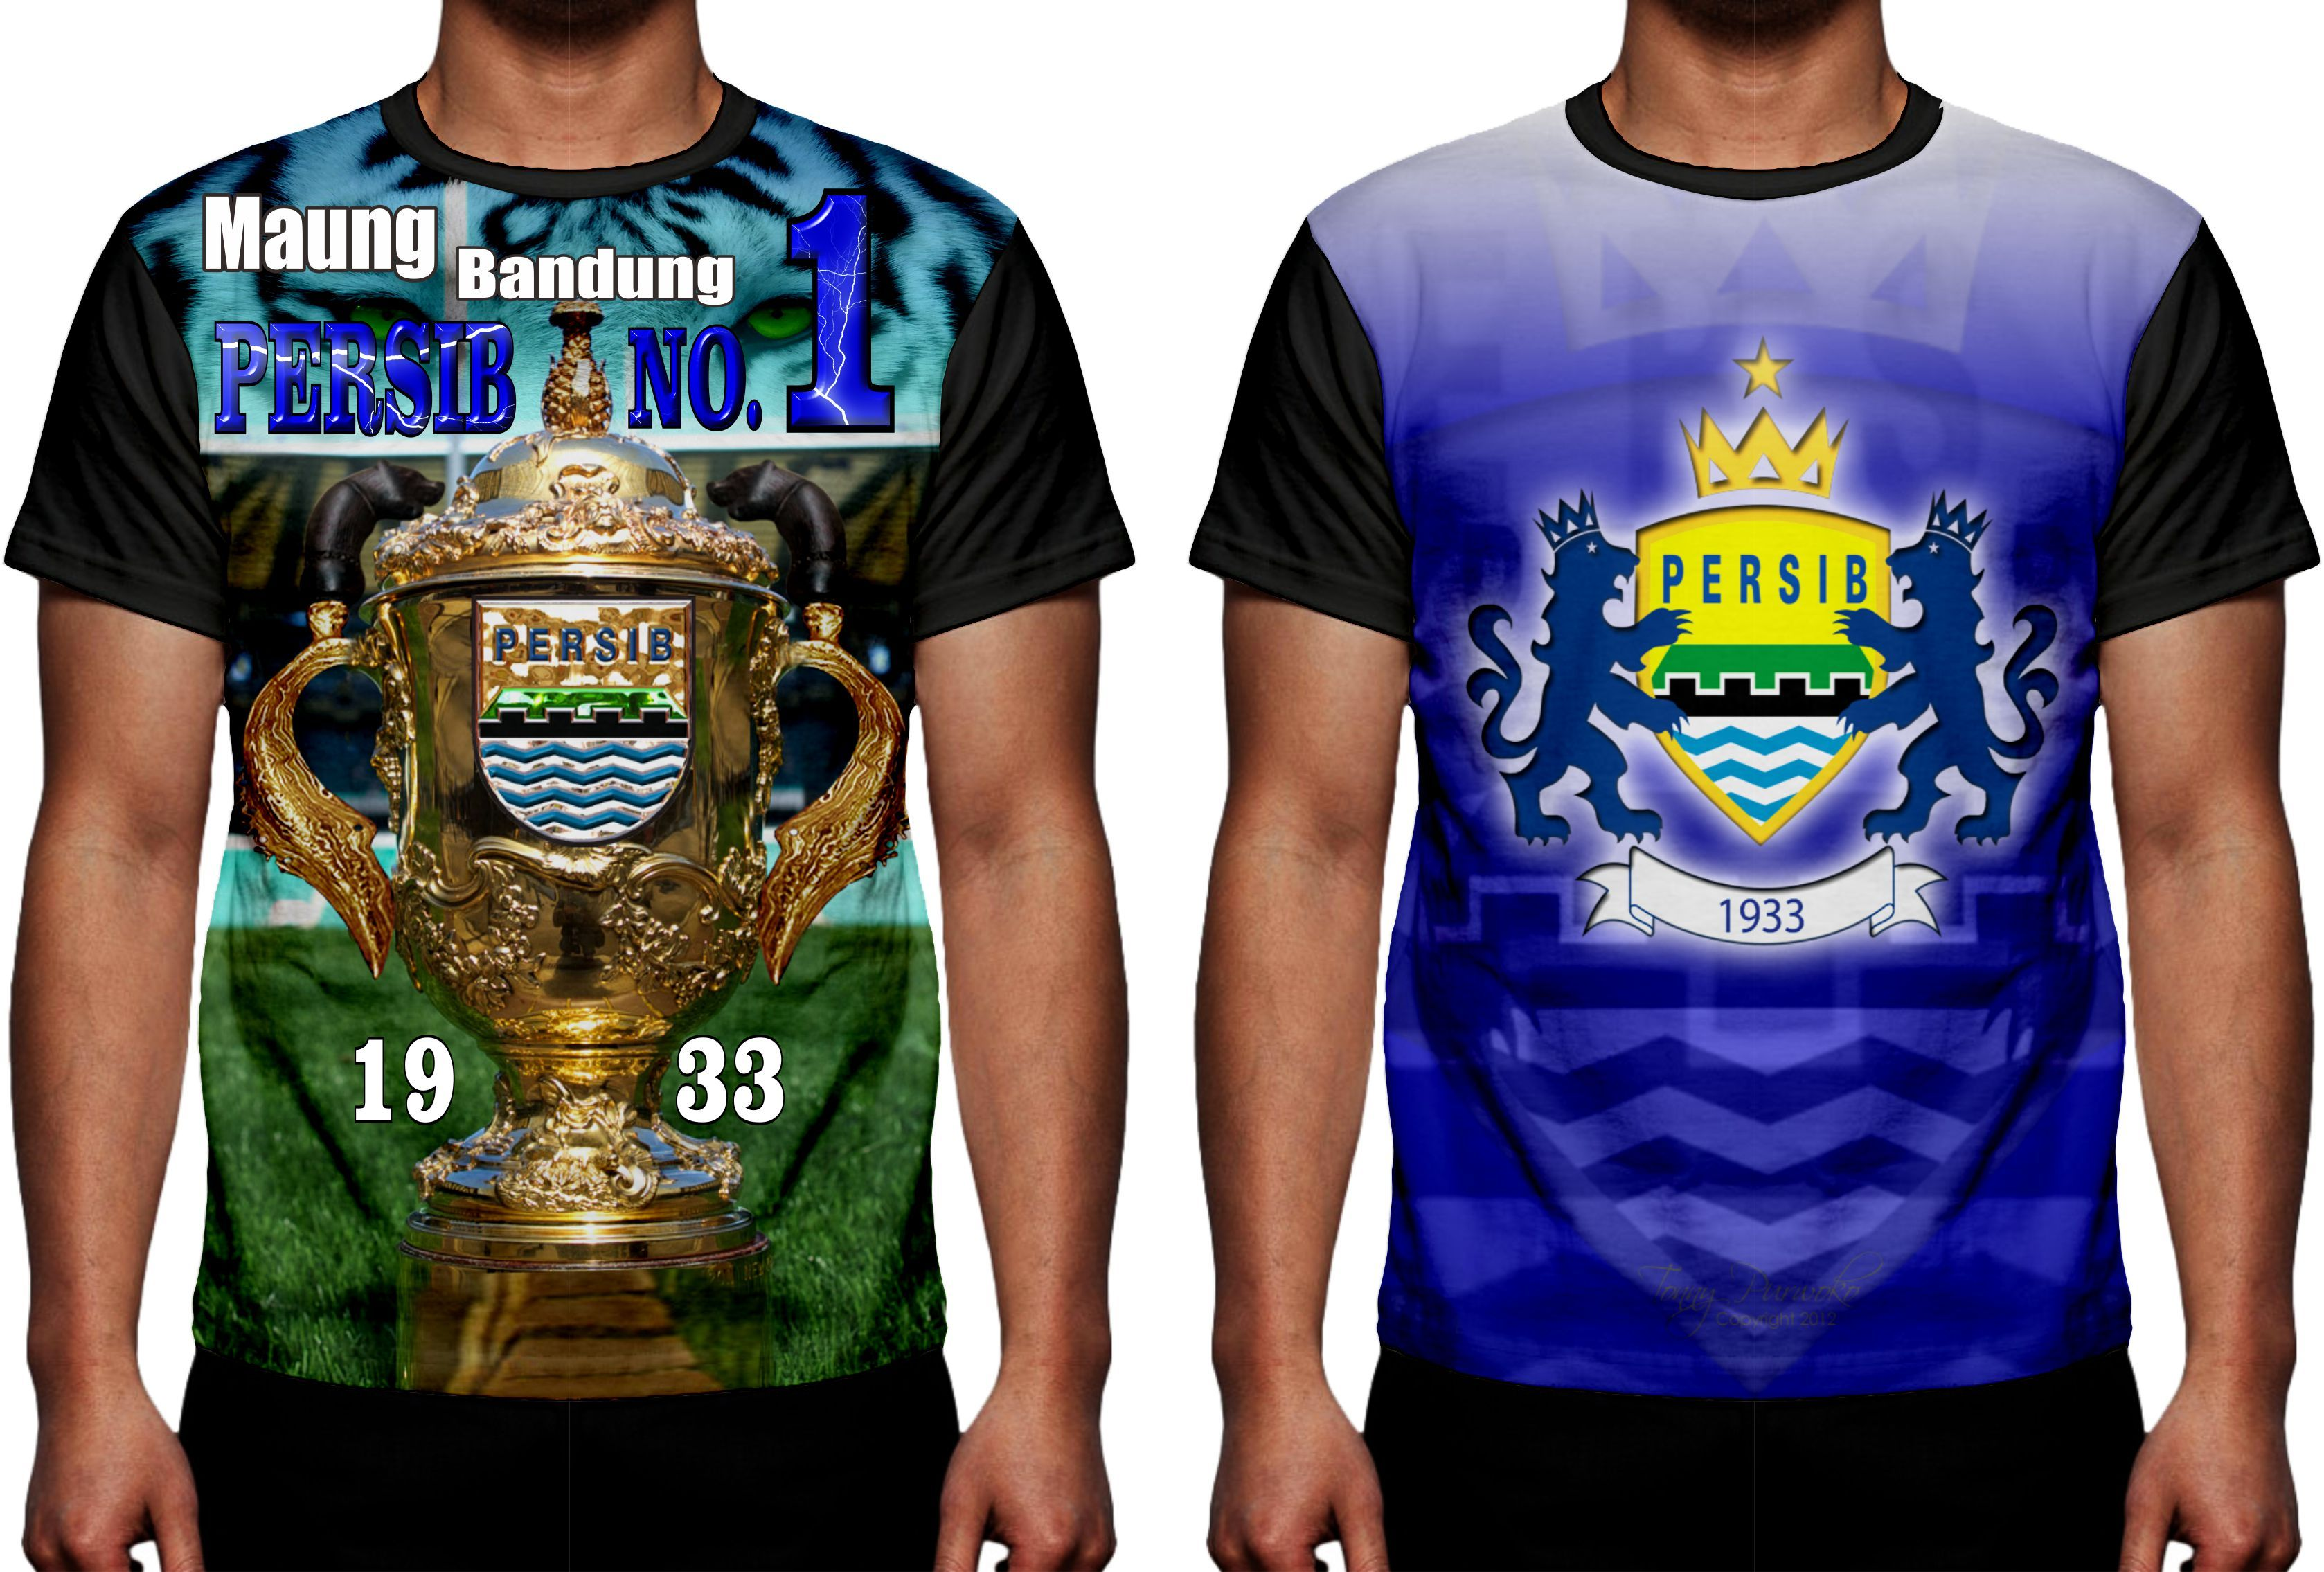 Pin By Rips Grafika On PERSIB EDITION Pinterest D And Bandung